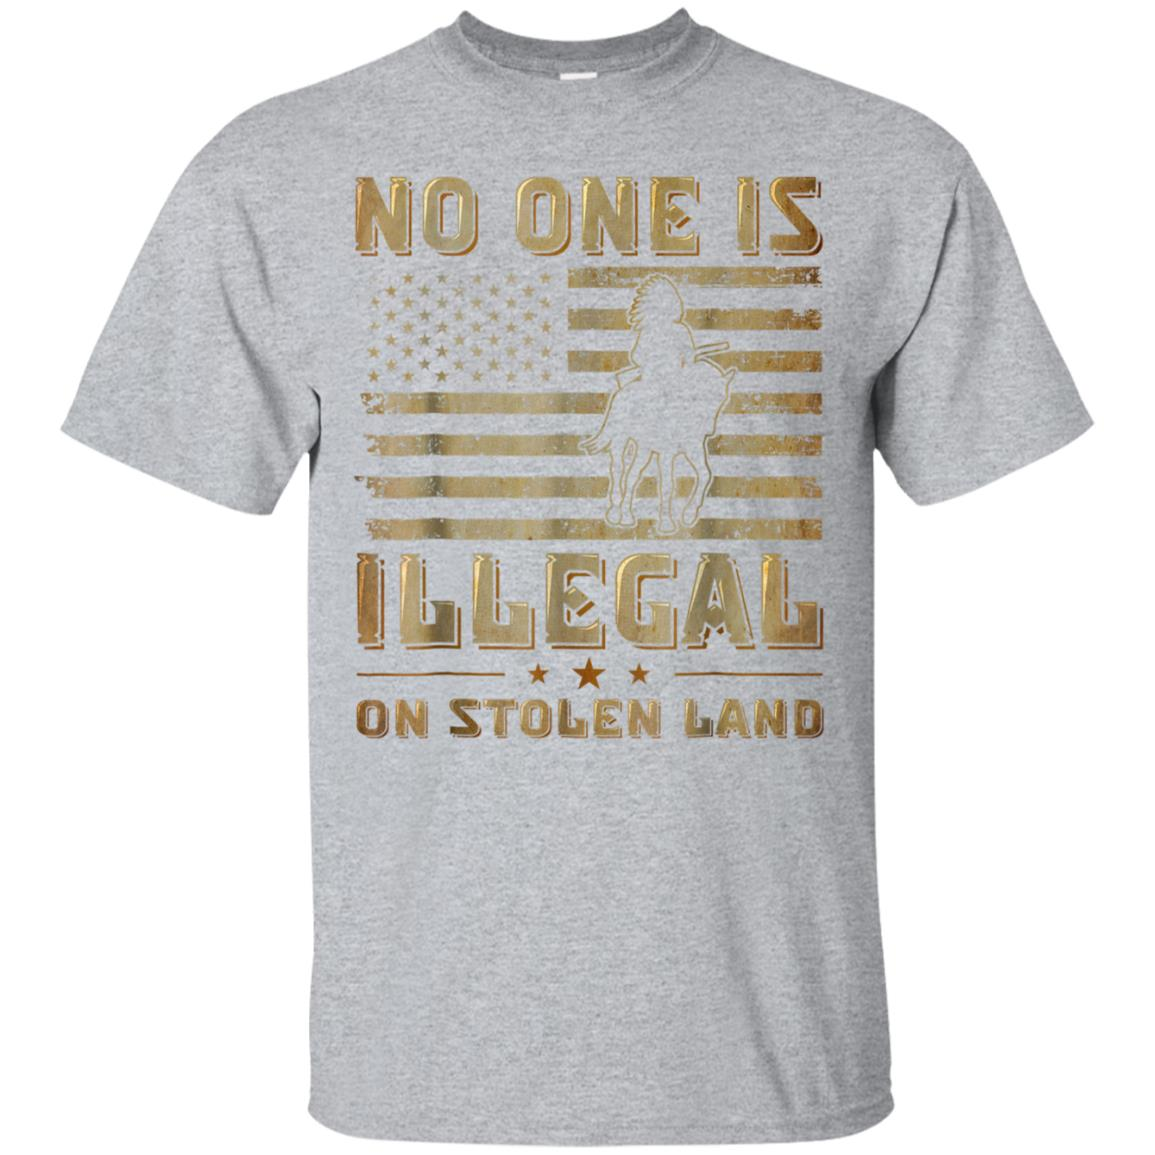 No One Is Illegal On Stolen Land T-shirt 99promocode